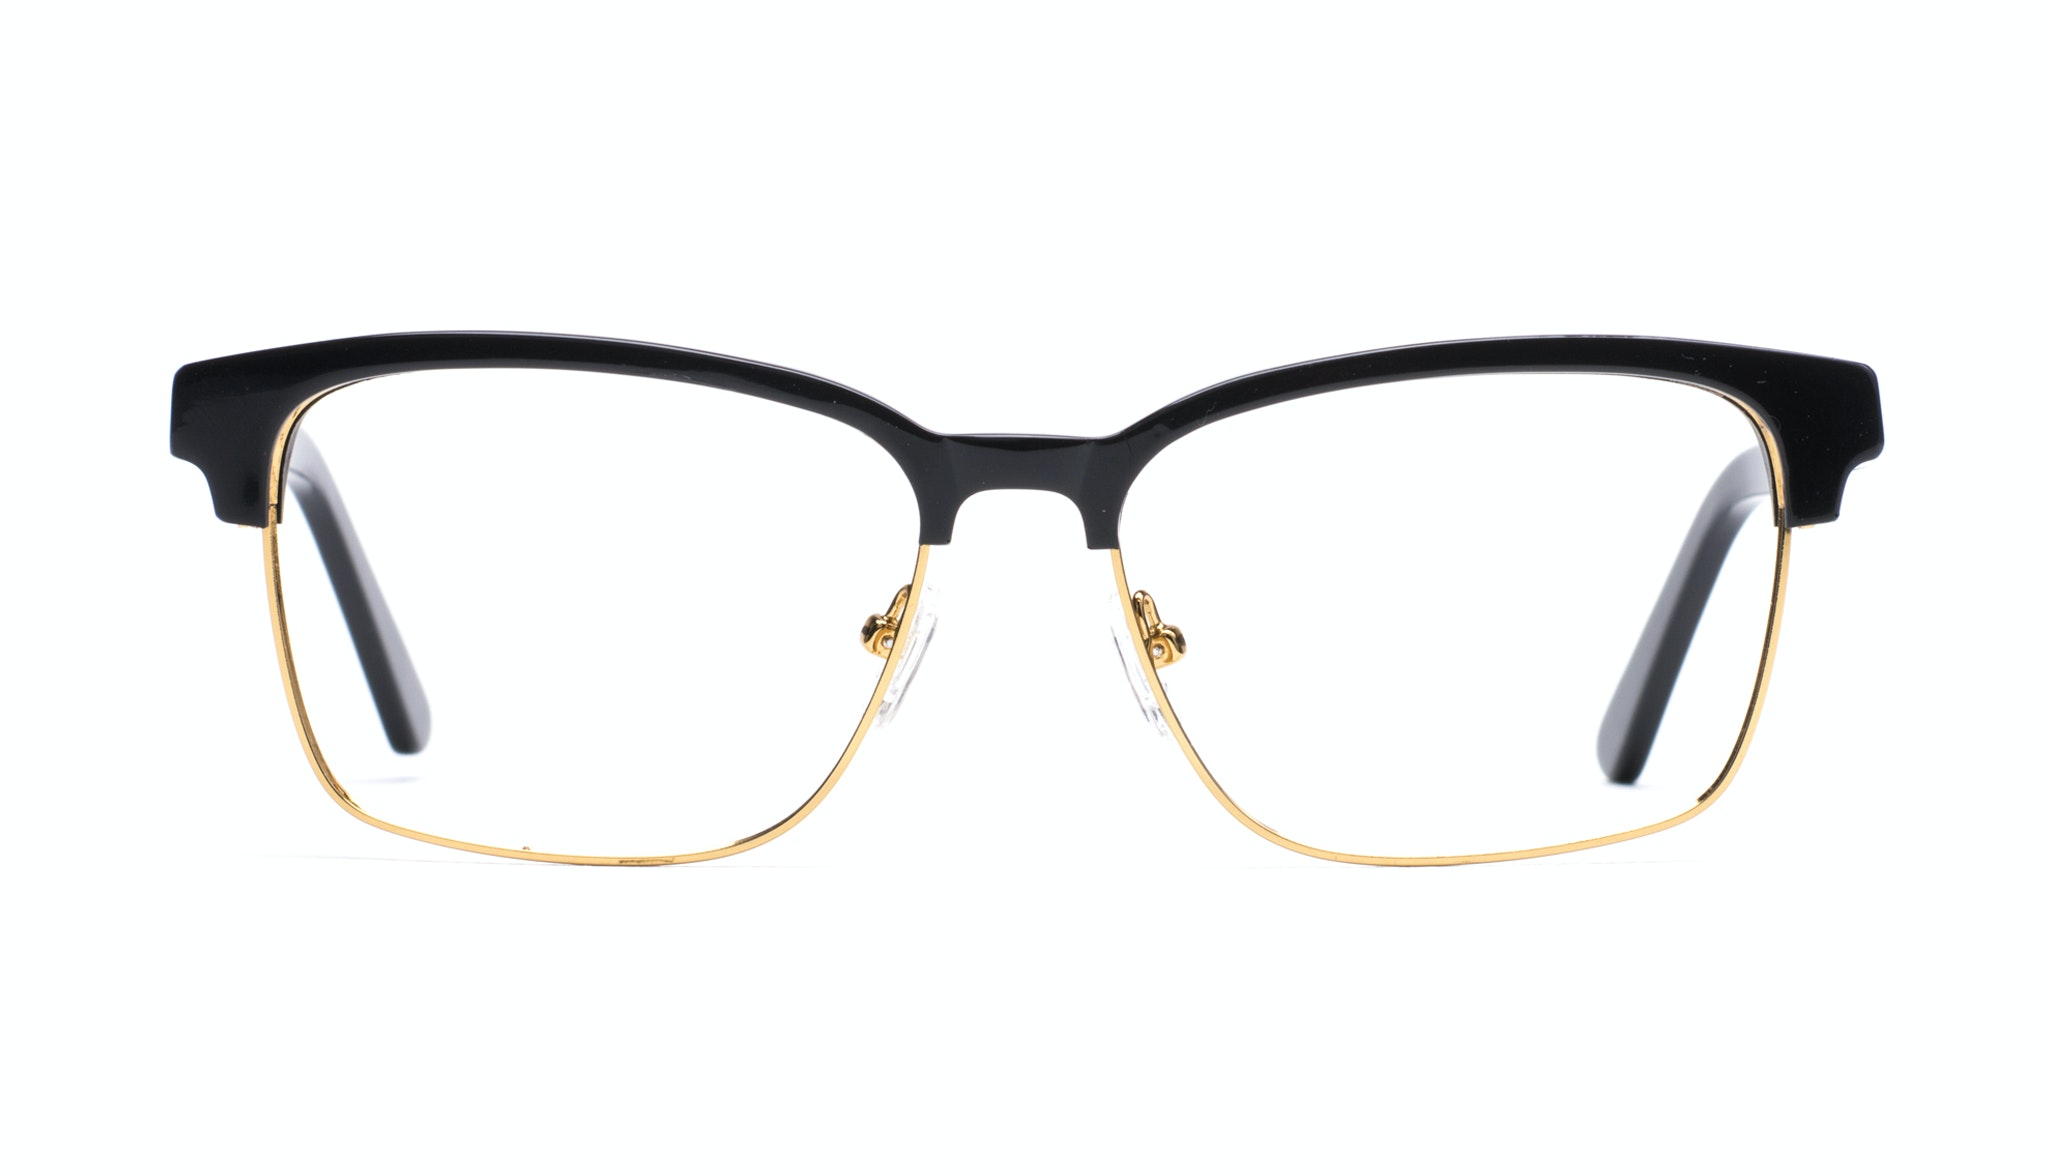 Affordable Fashion Glasses Rectangle Eyeglasses Men Gallery Black